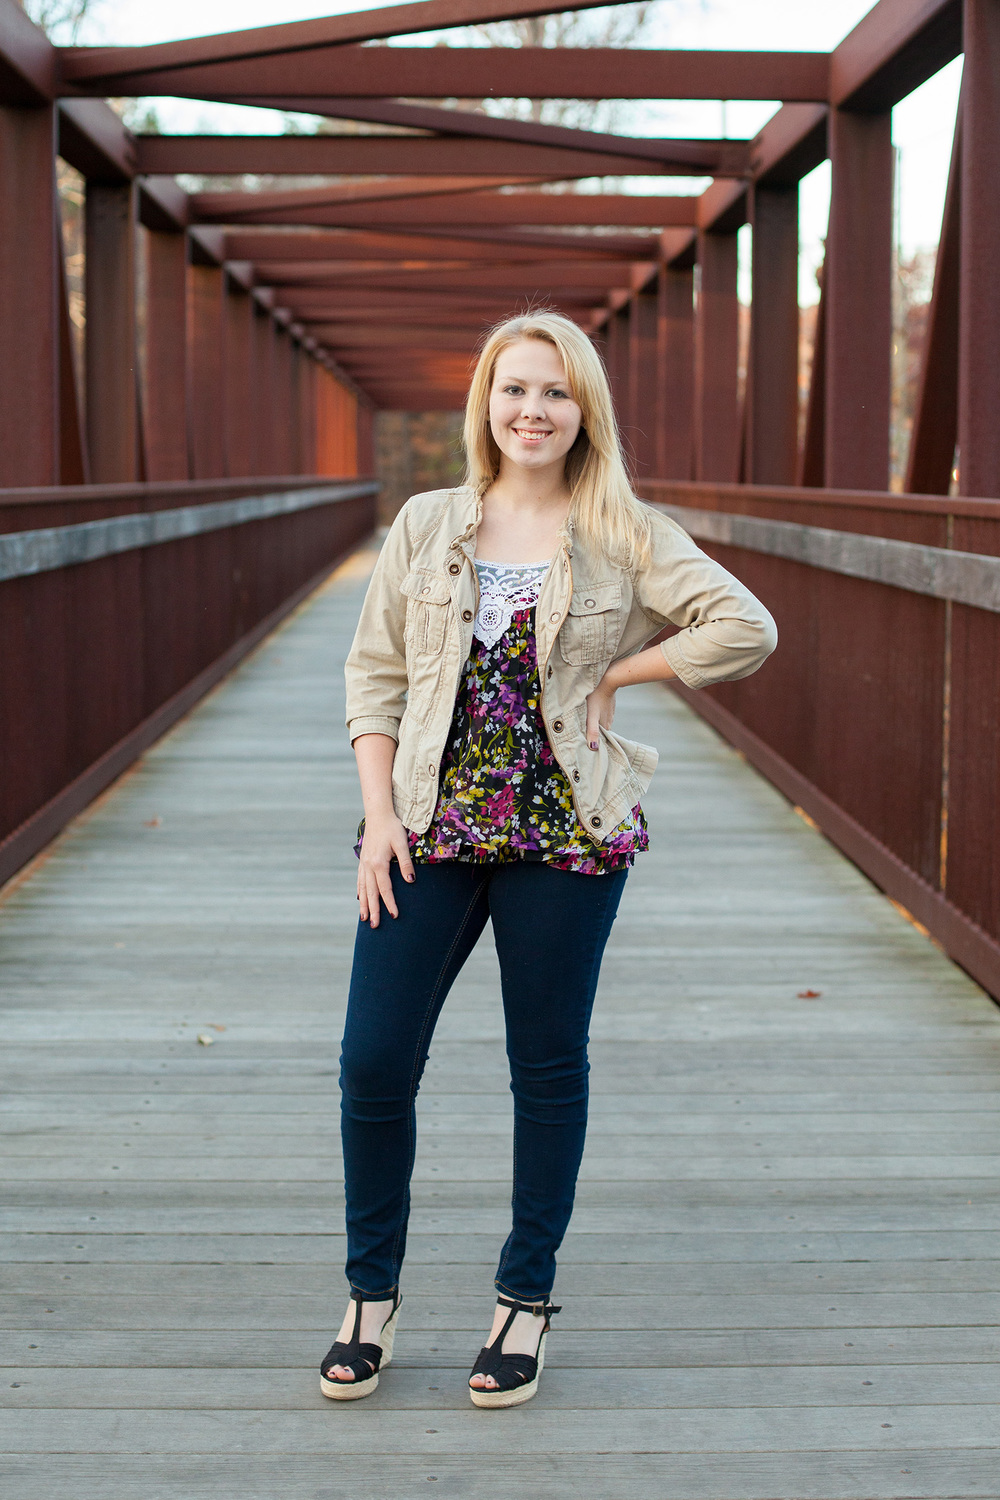 Woodland Senior Portrait Photography in Durham